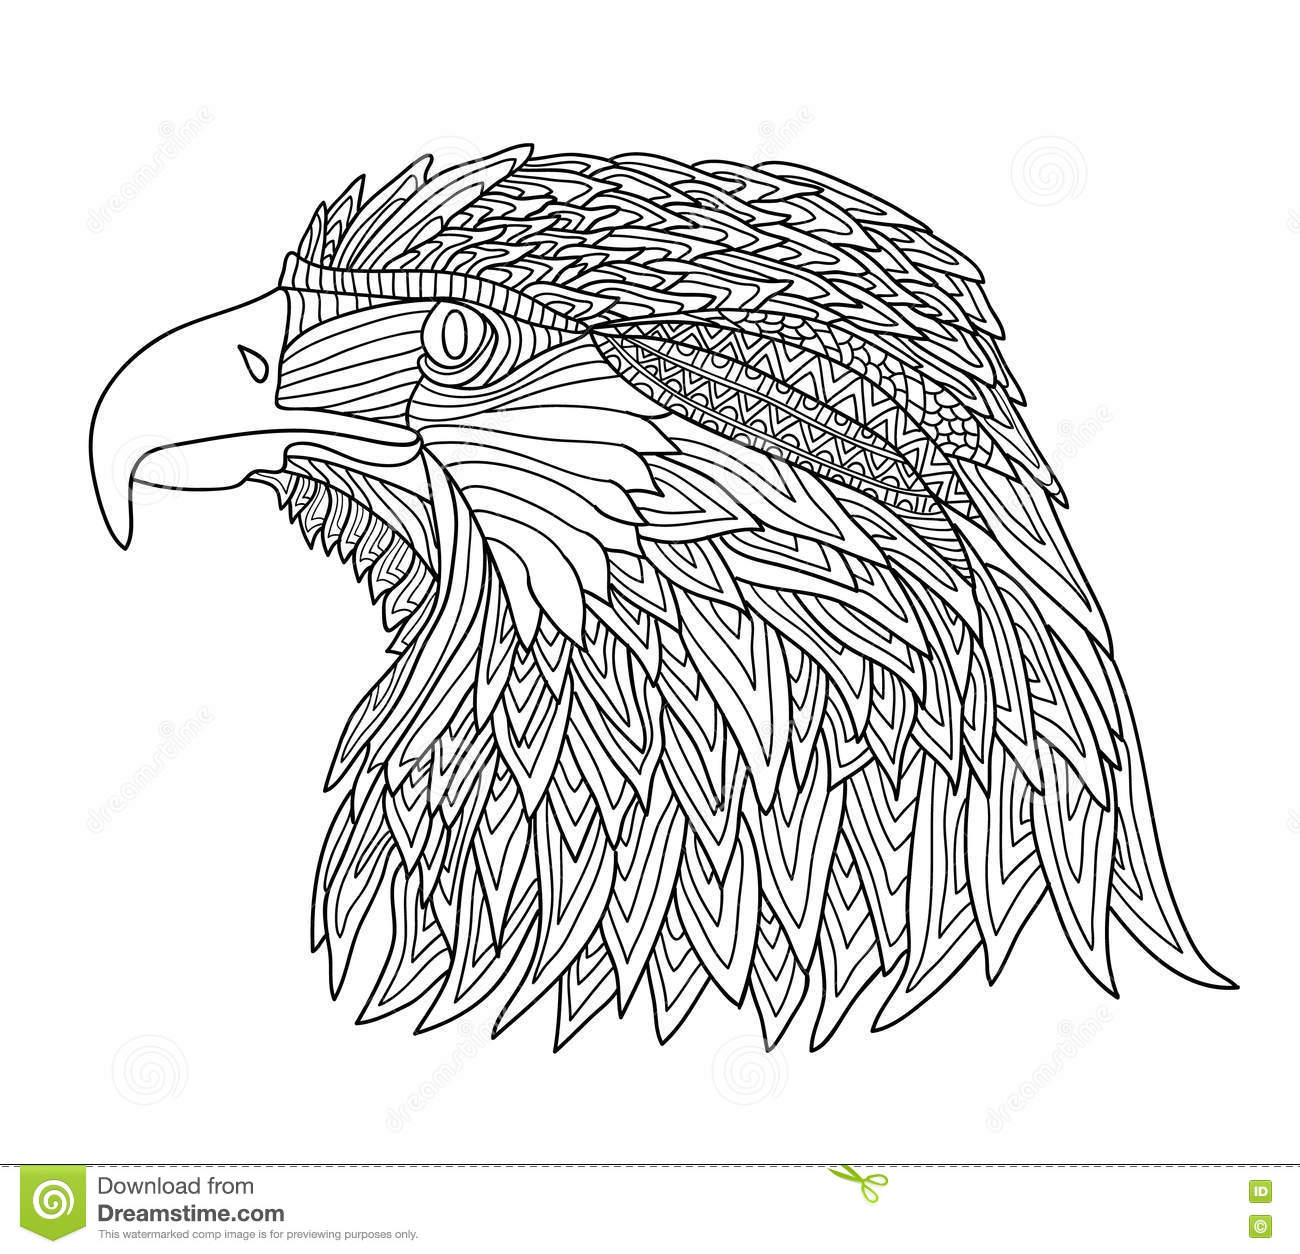 Coloring books for adults and children - Coloring Book For Adults And Children Brutal Eagle